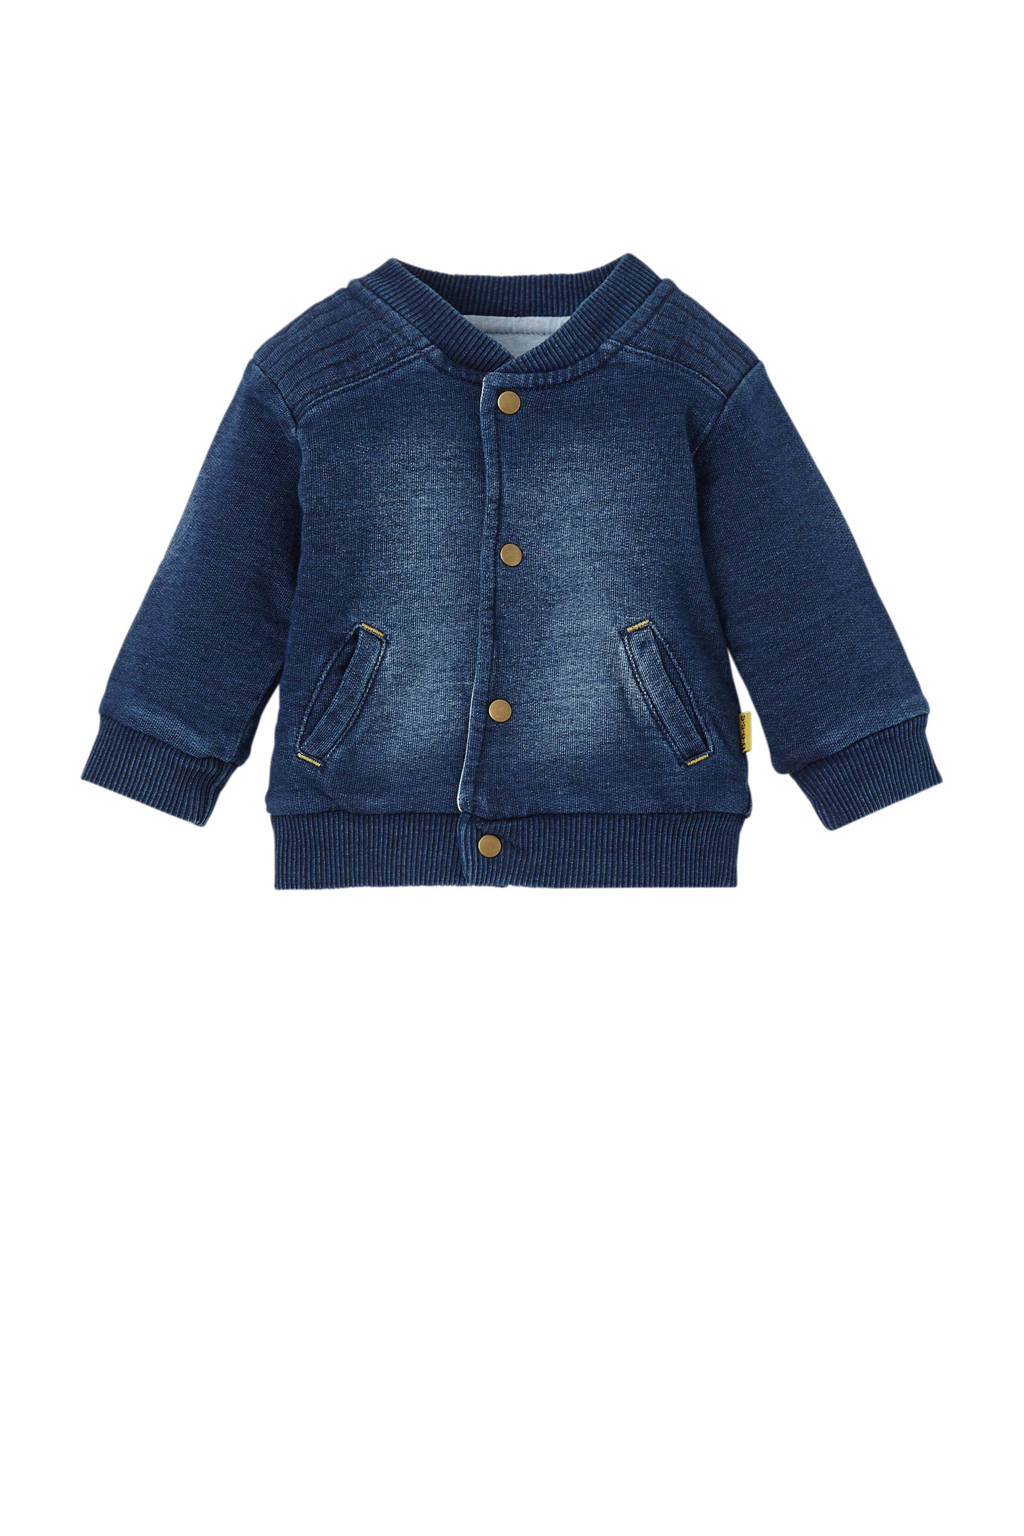 B.E.S.S newborn bombervest, Dark denim